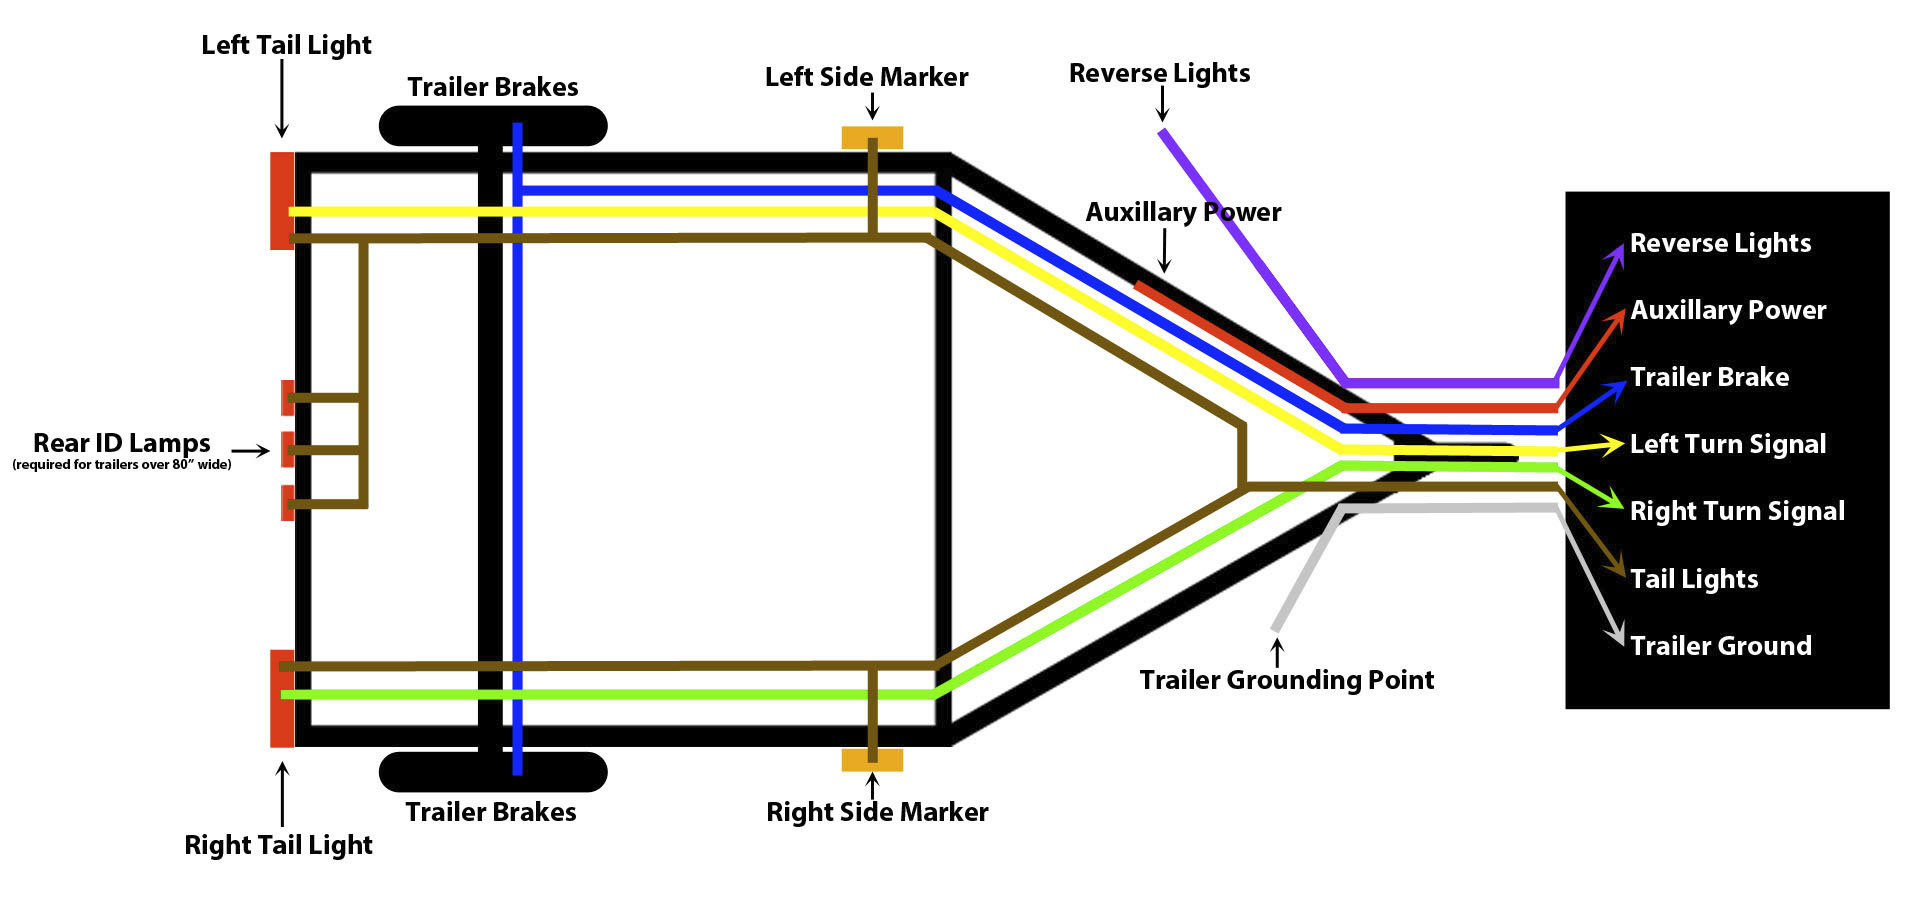 How To Wire Trailer Lights - Trailer Wiring Guide & Videos - 4 Plug Wiring Diagram Trailer